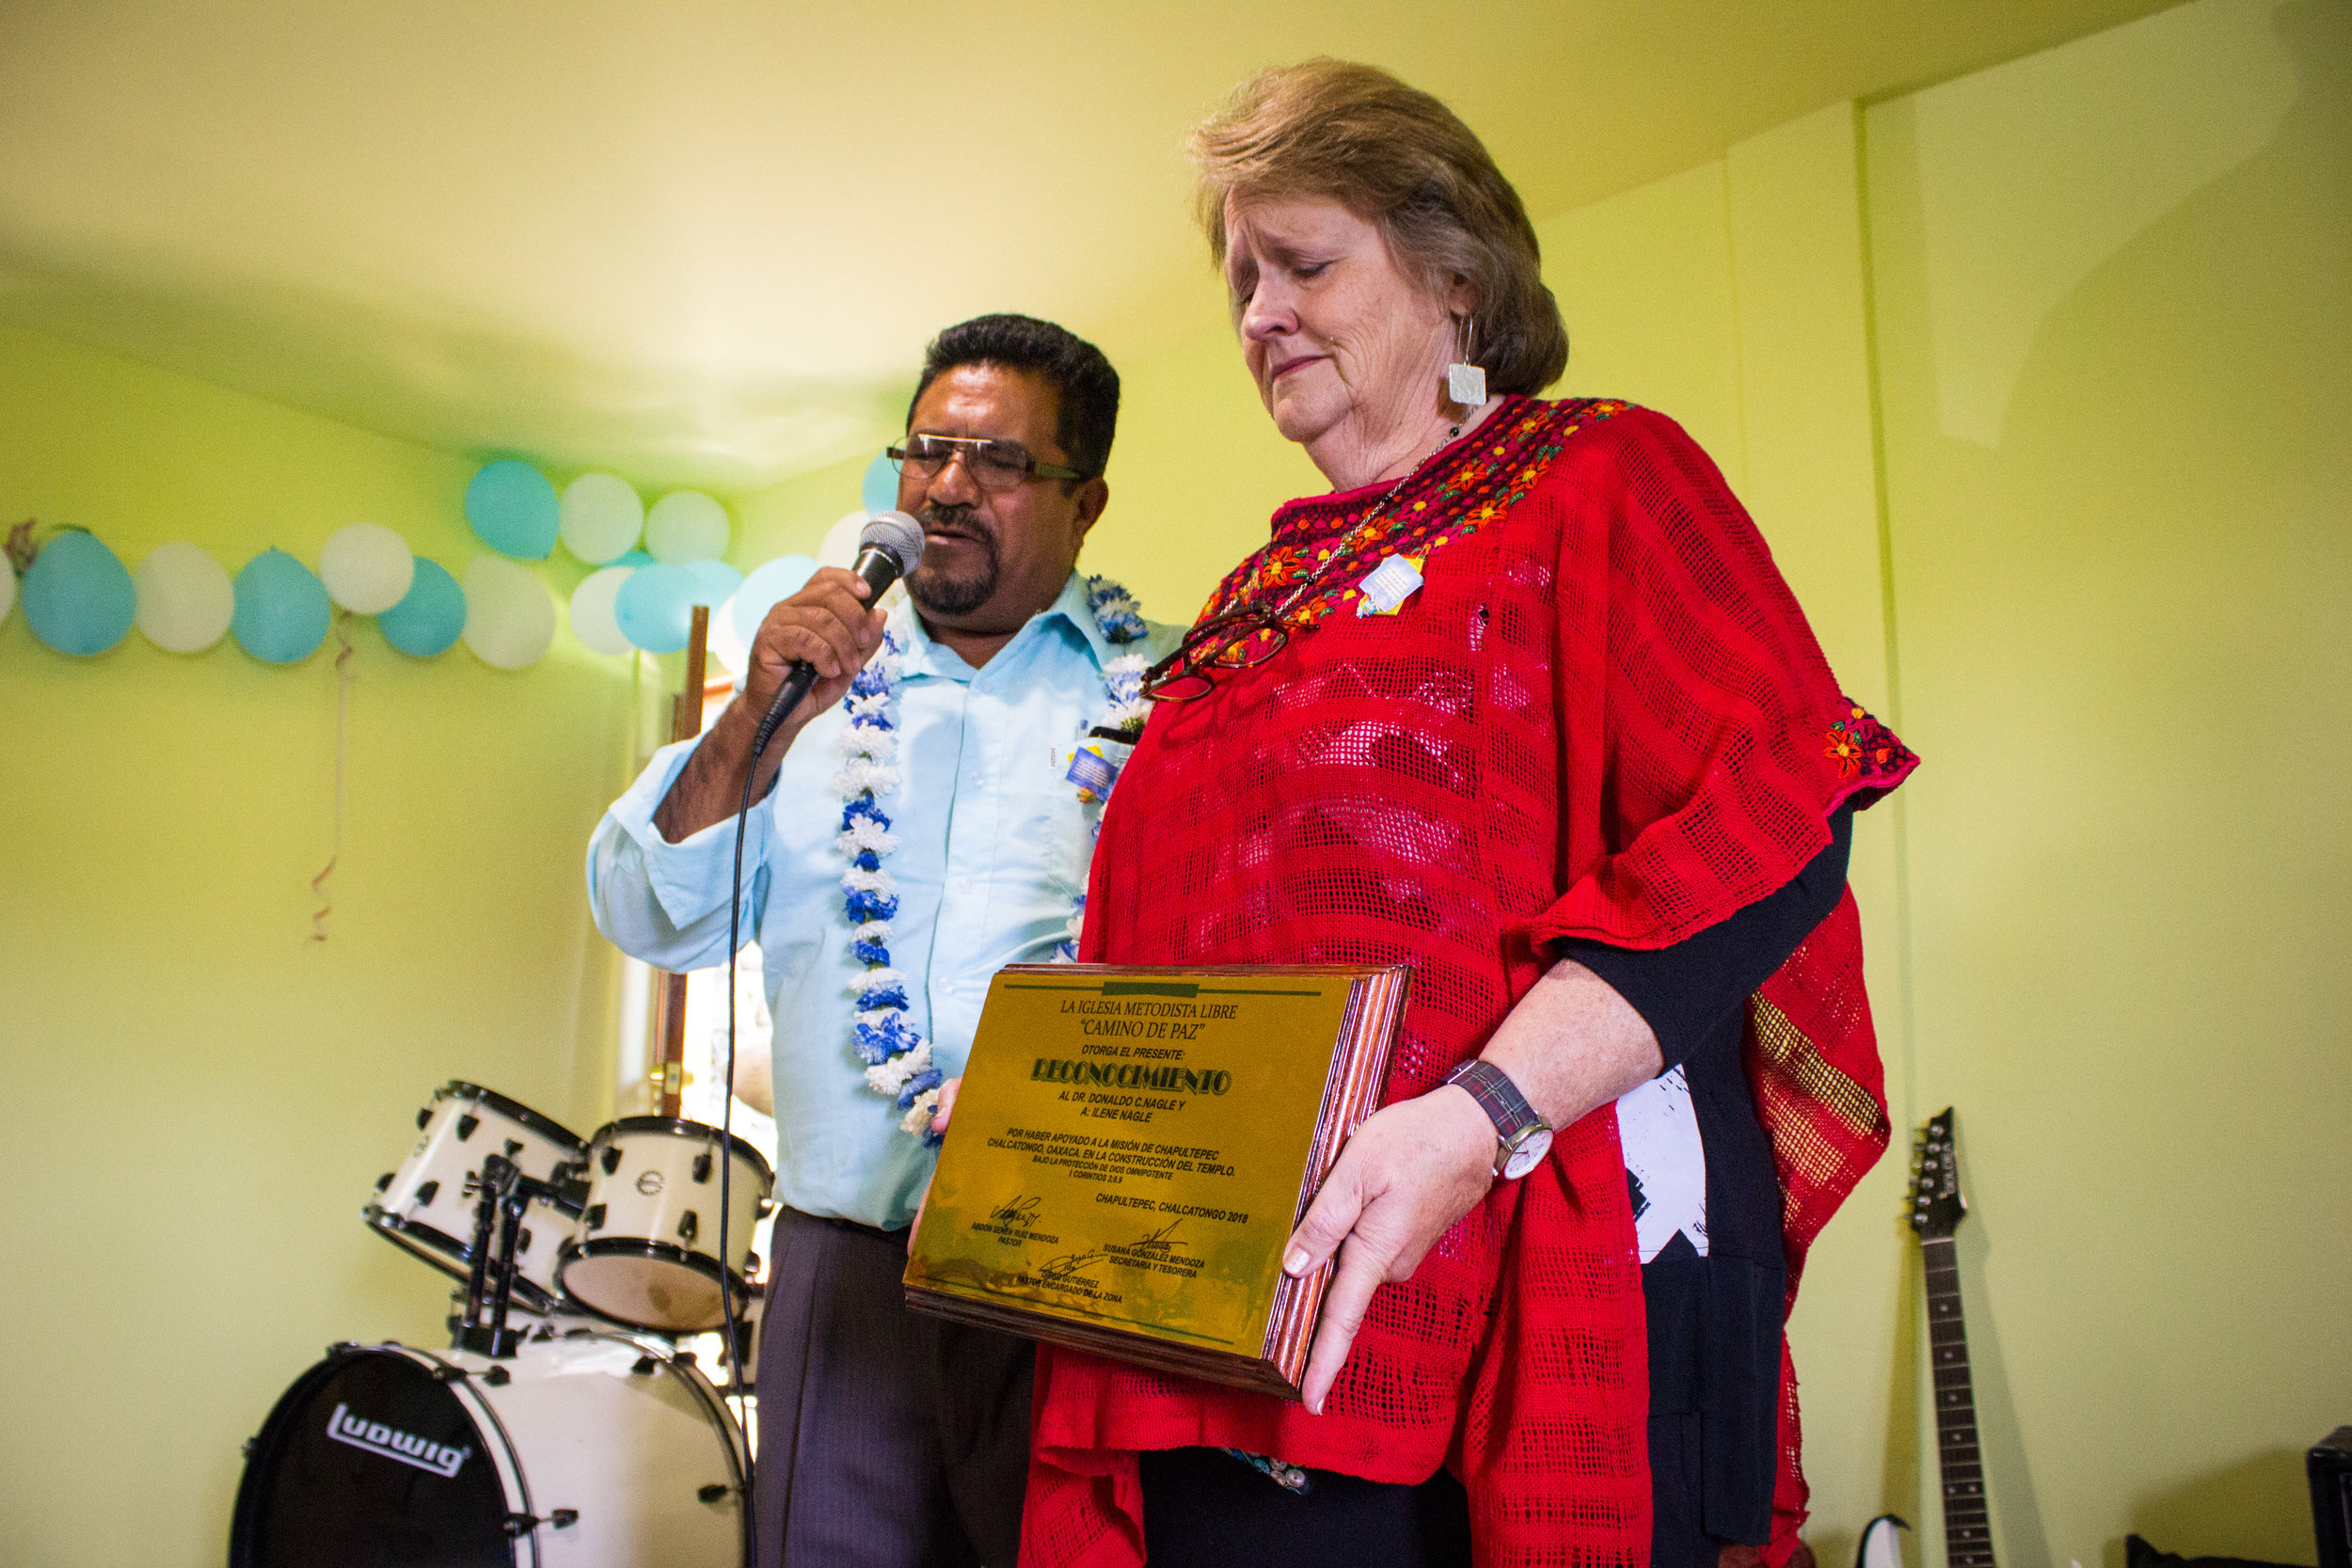 Ilene is overwhelmed when Senen and the other pastors present her with a plaque of gratitude. It is no small feat for them to honor her in this way, in a village where items like this are not made locally.